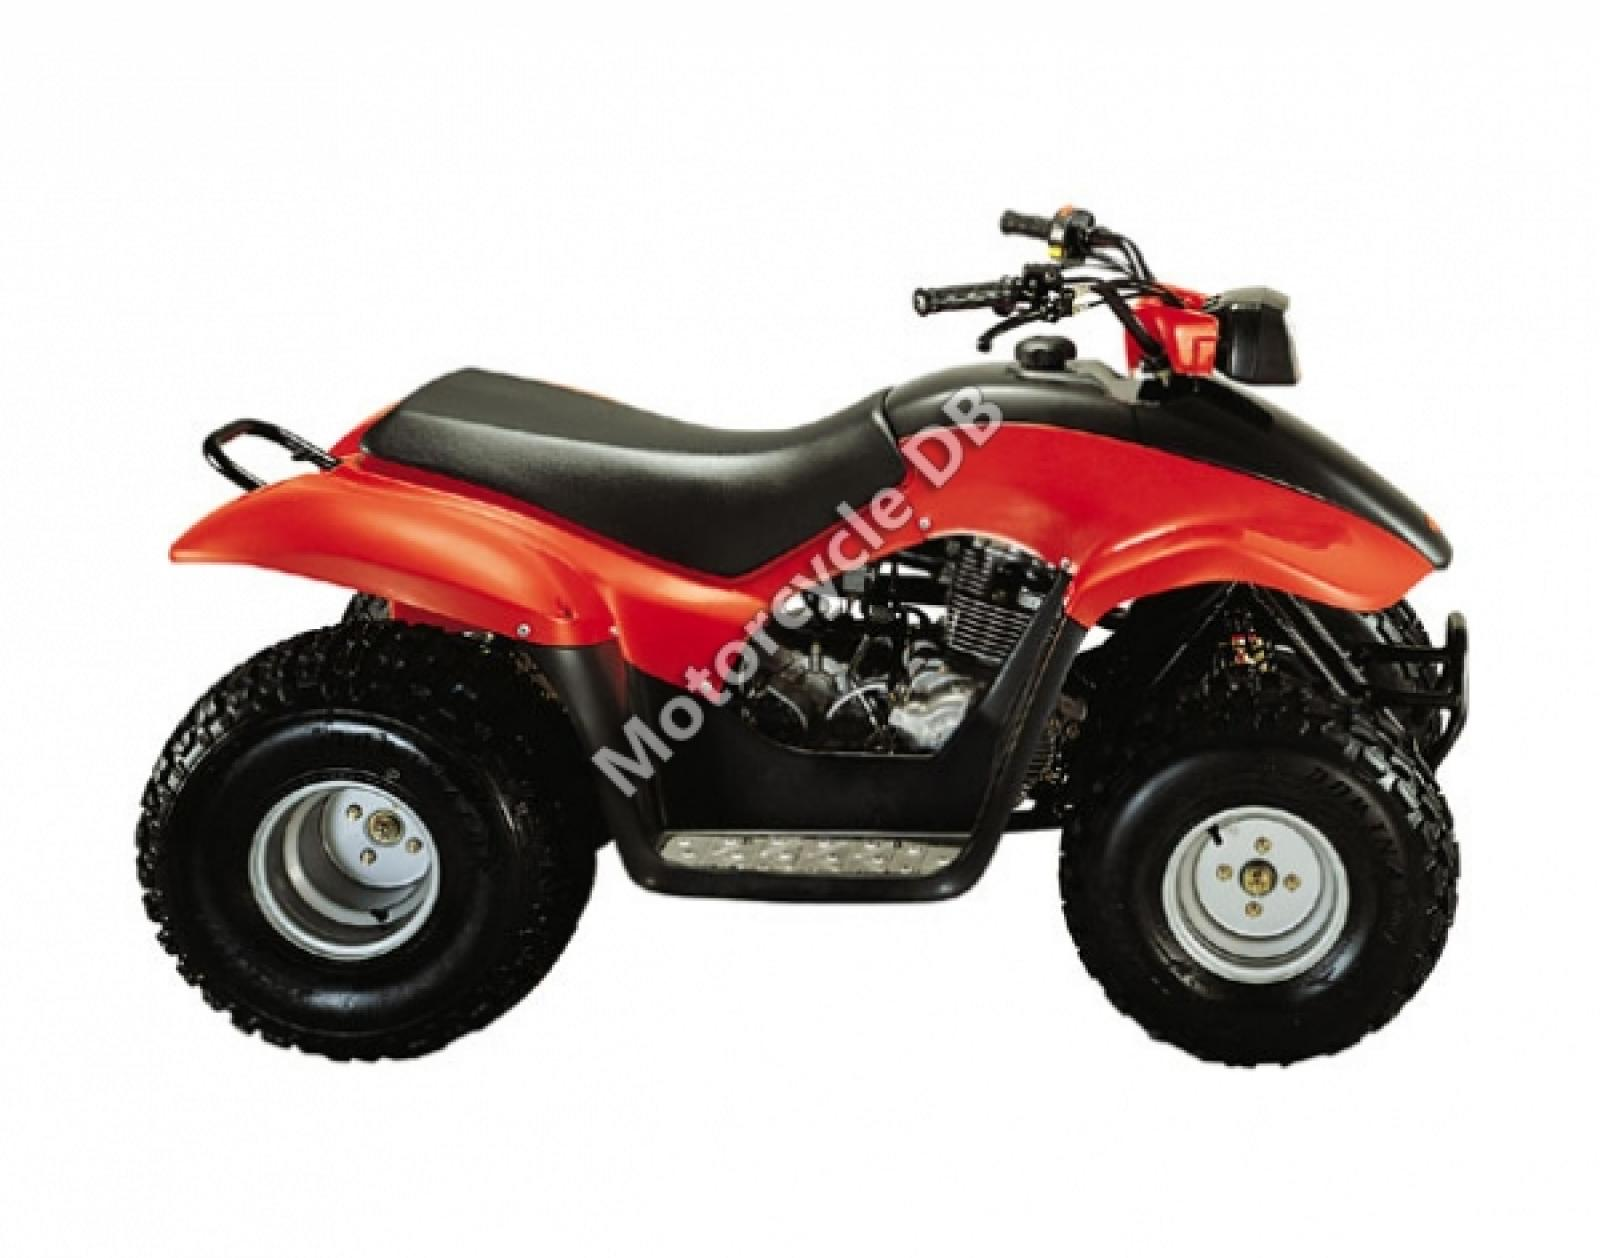 kymco super 8 125 e3 2007 13 100 [ kymco super 8 50cc 2008 shop manual ] user manual and kymco super8 125 wiring diagram at bakdesigns.co